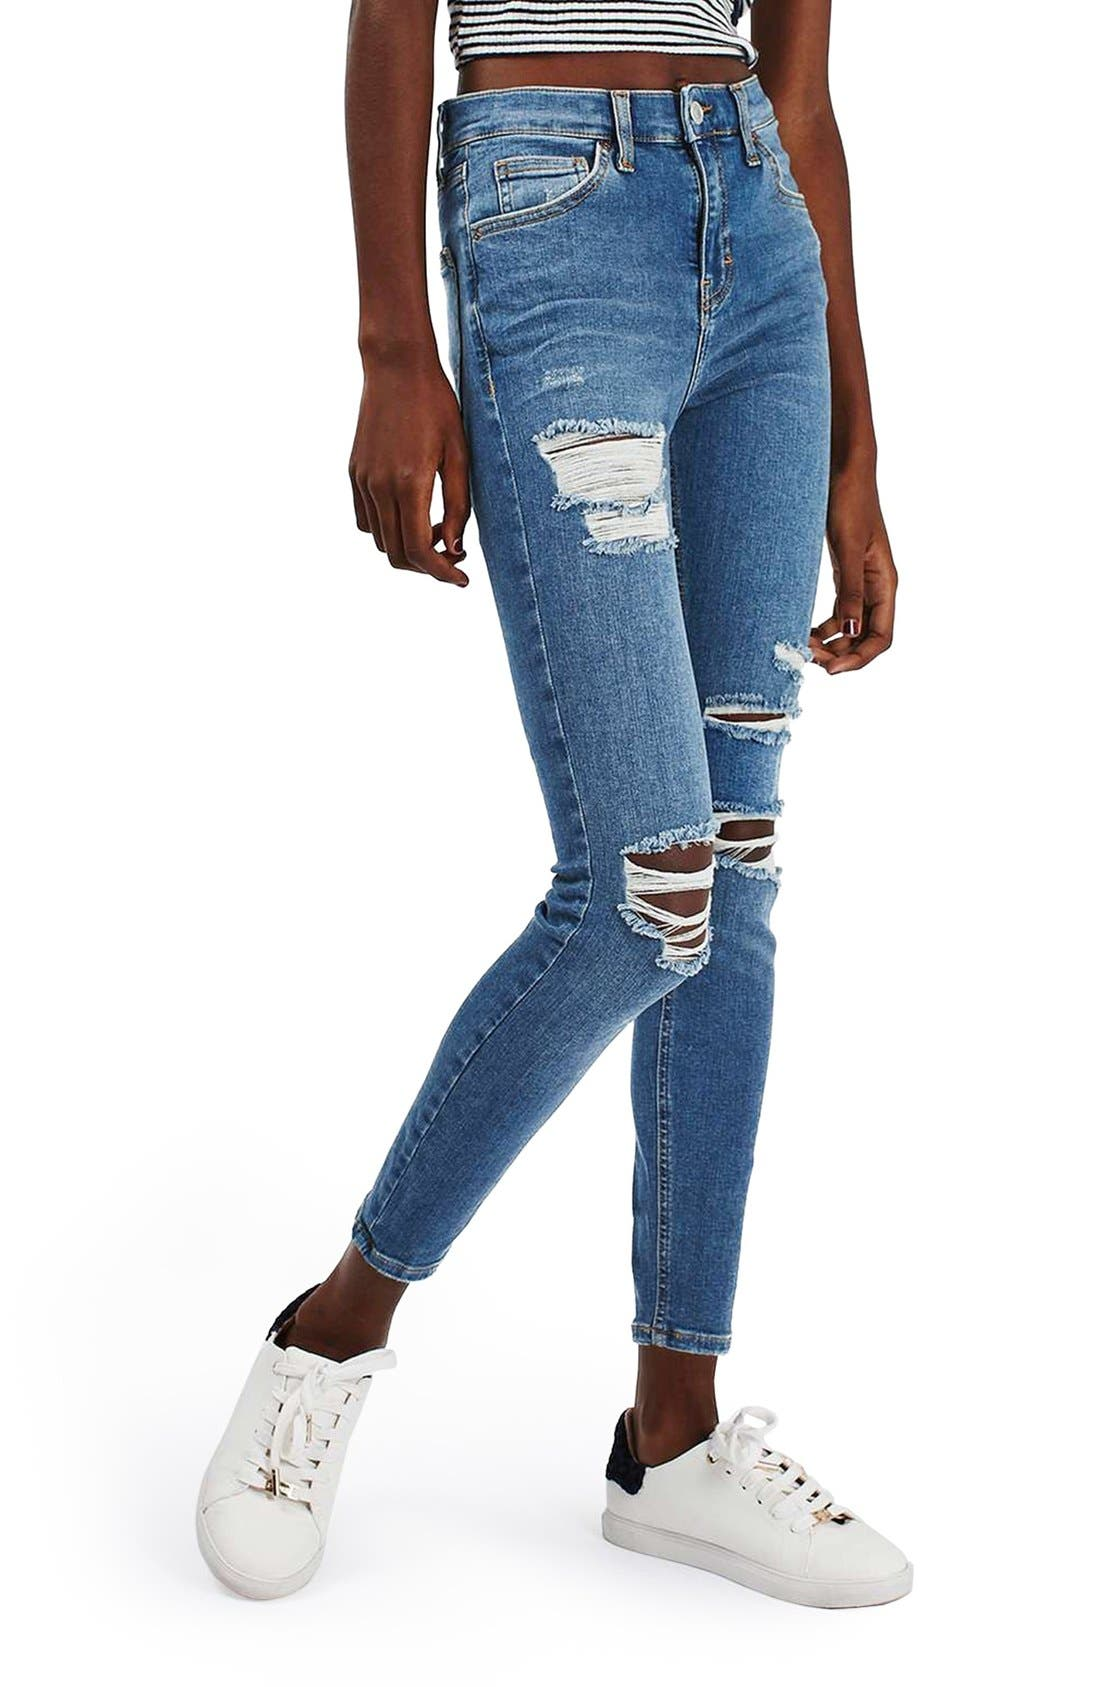 Alternate Image 1 Selected - Topshop 'Jamie' Ripped High Rise Ankle Skinny Jeans (Petite)